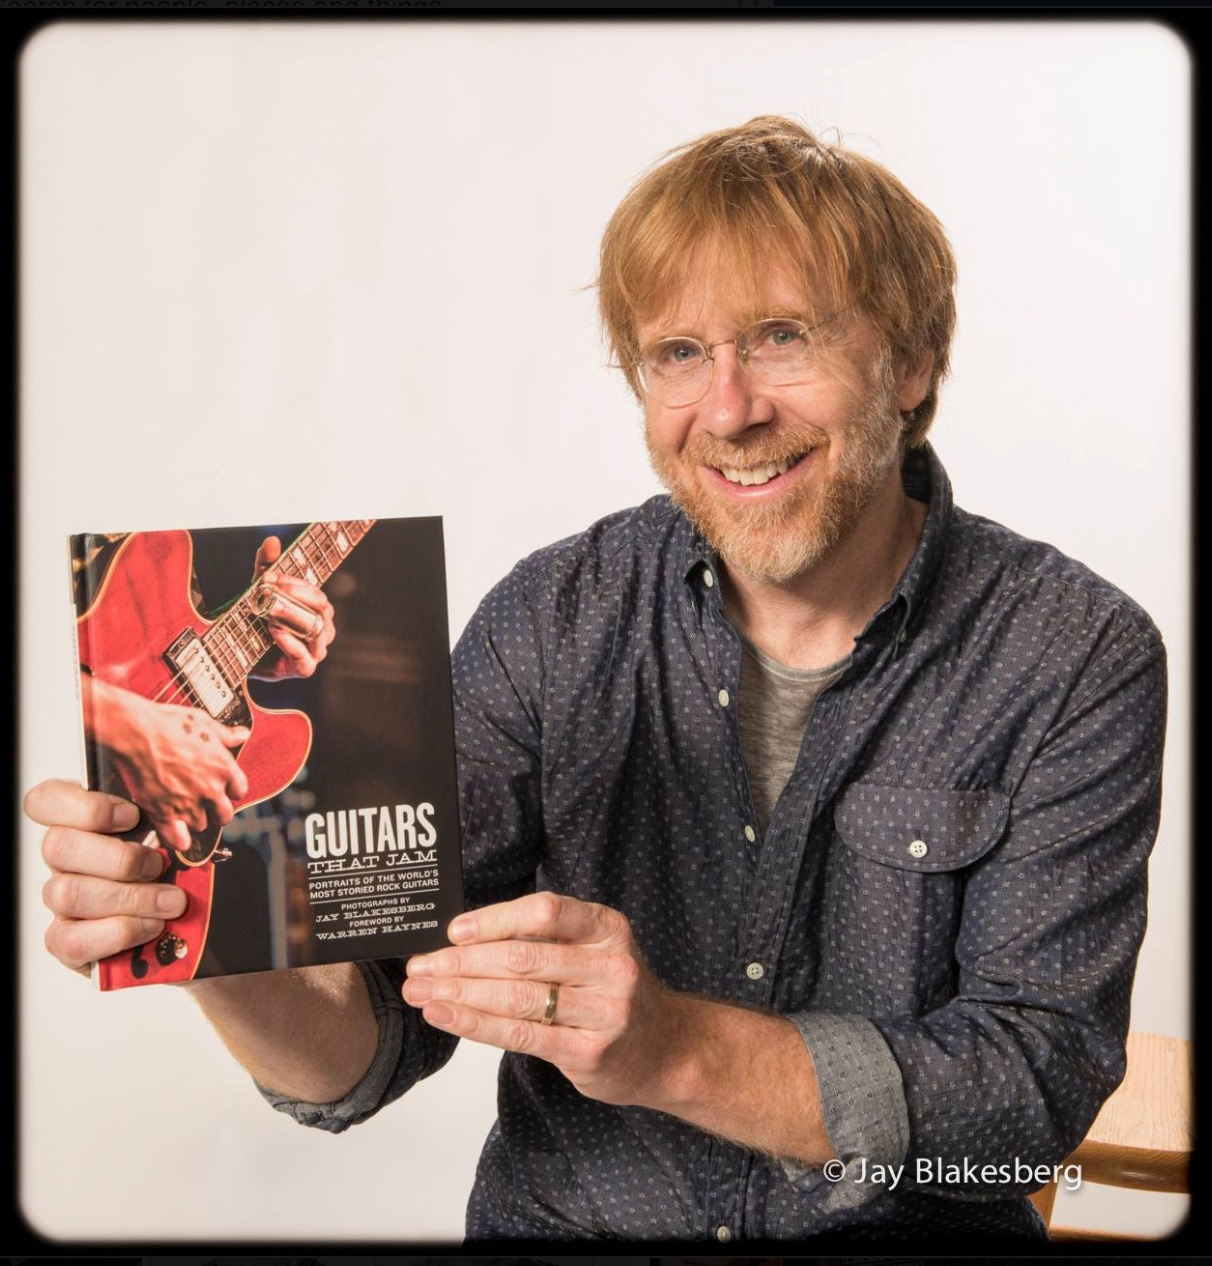 Trey_with_book